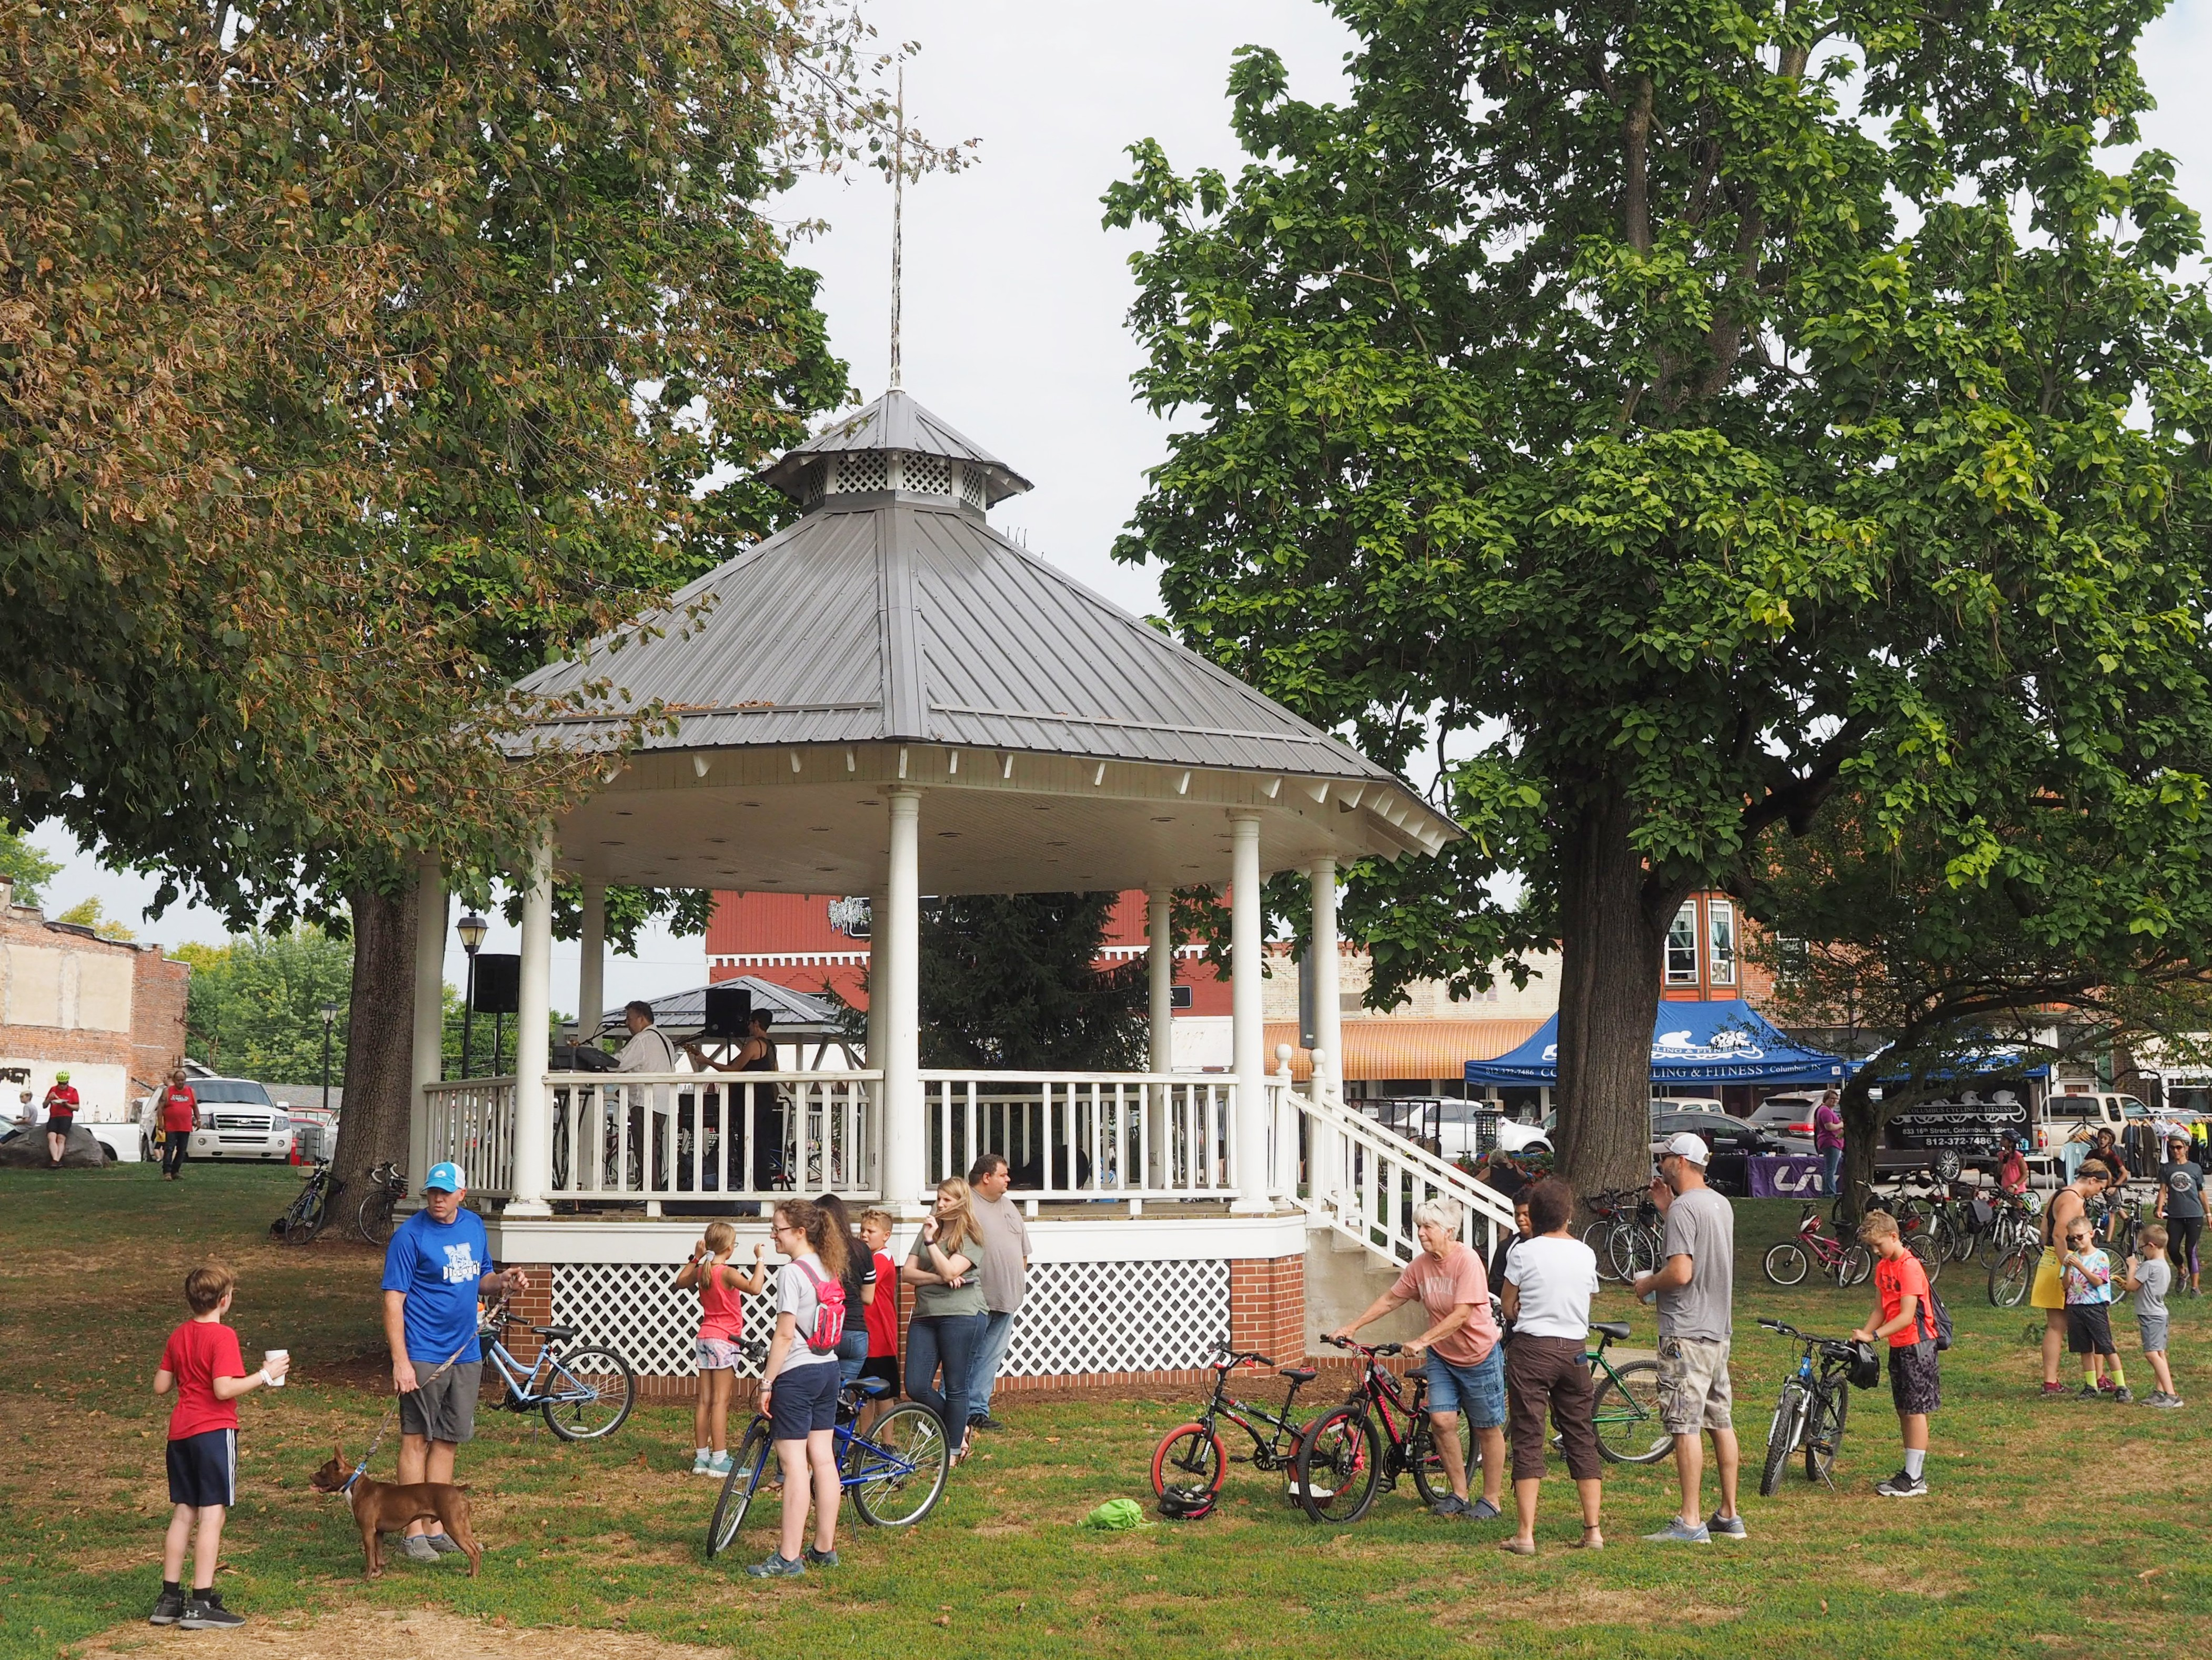 Amish Roofers bandstand 1